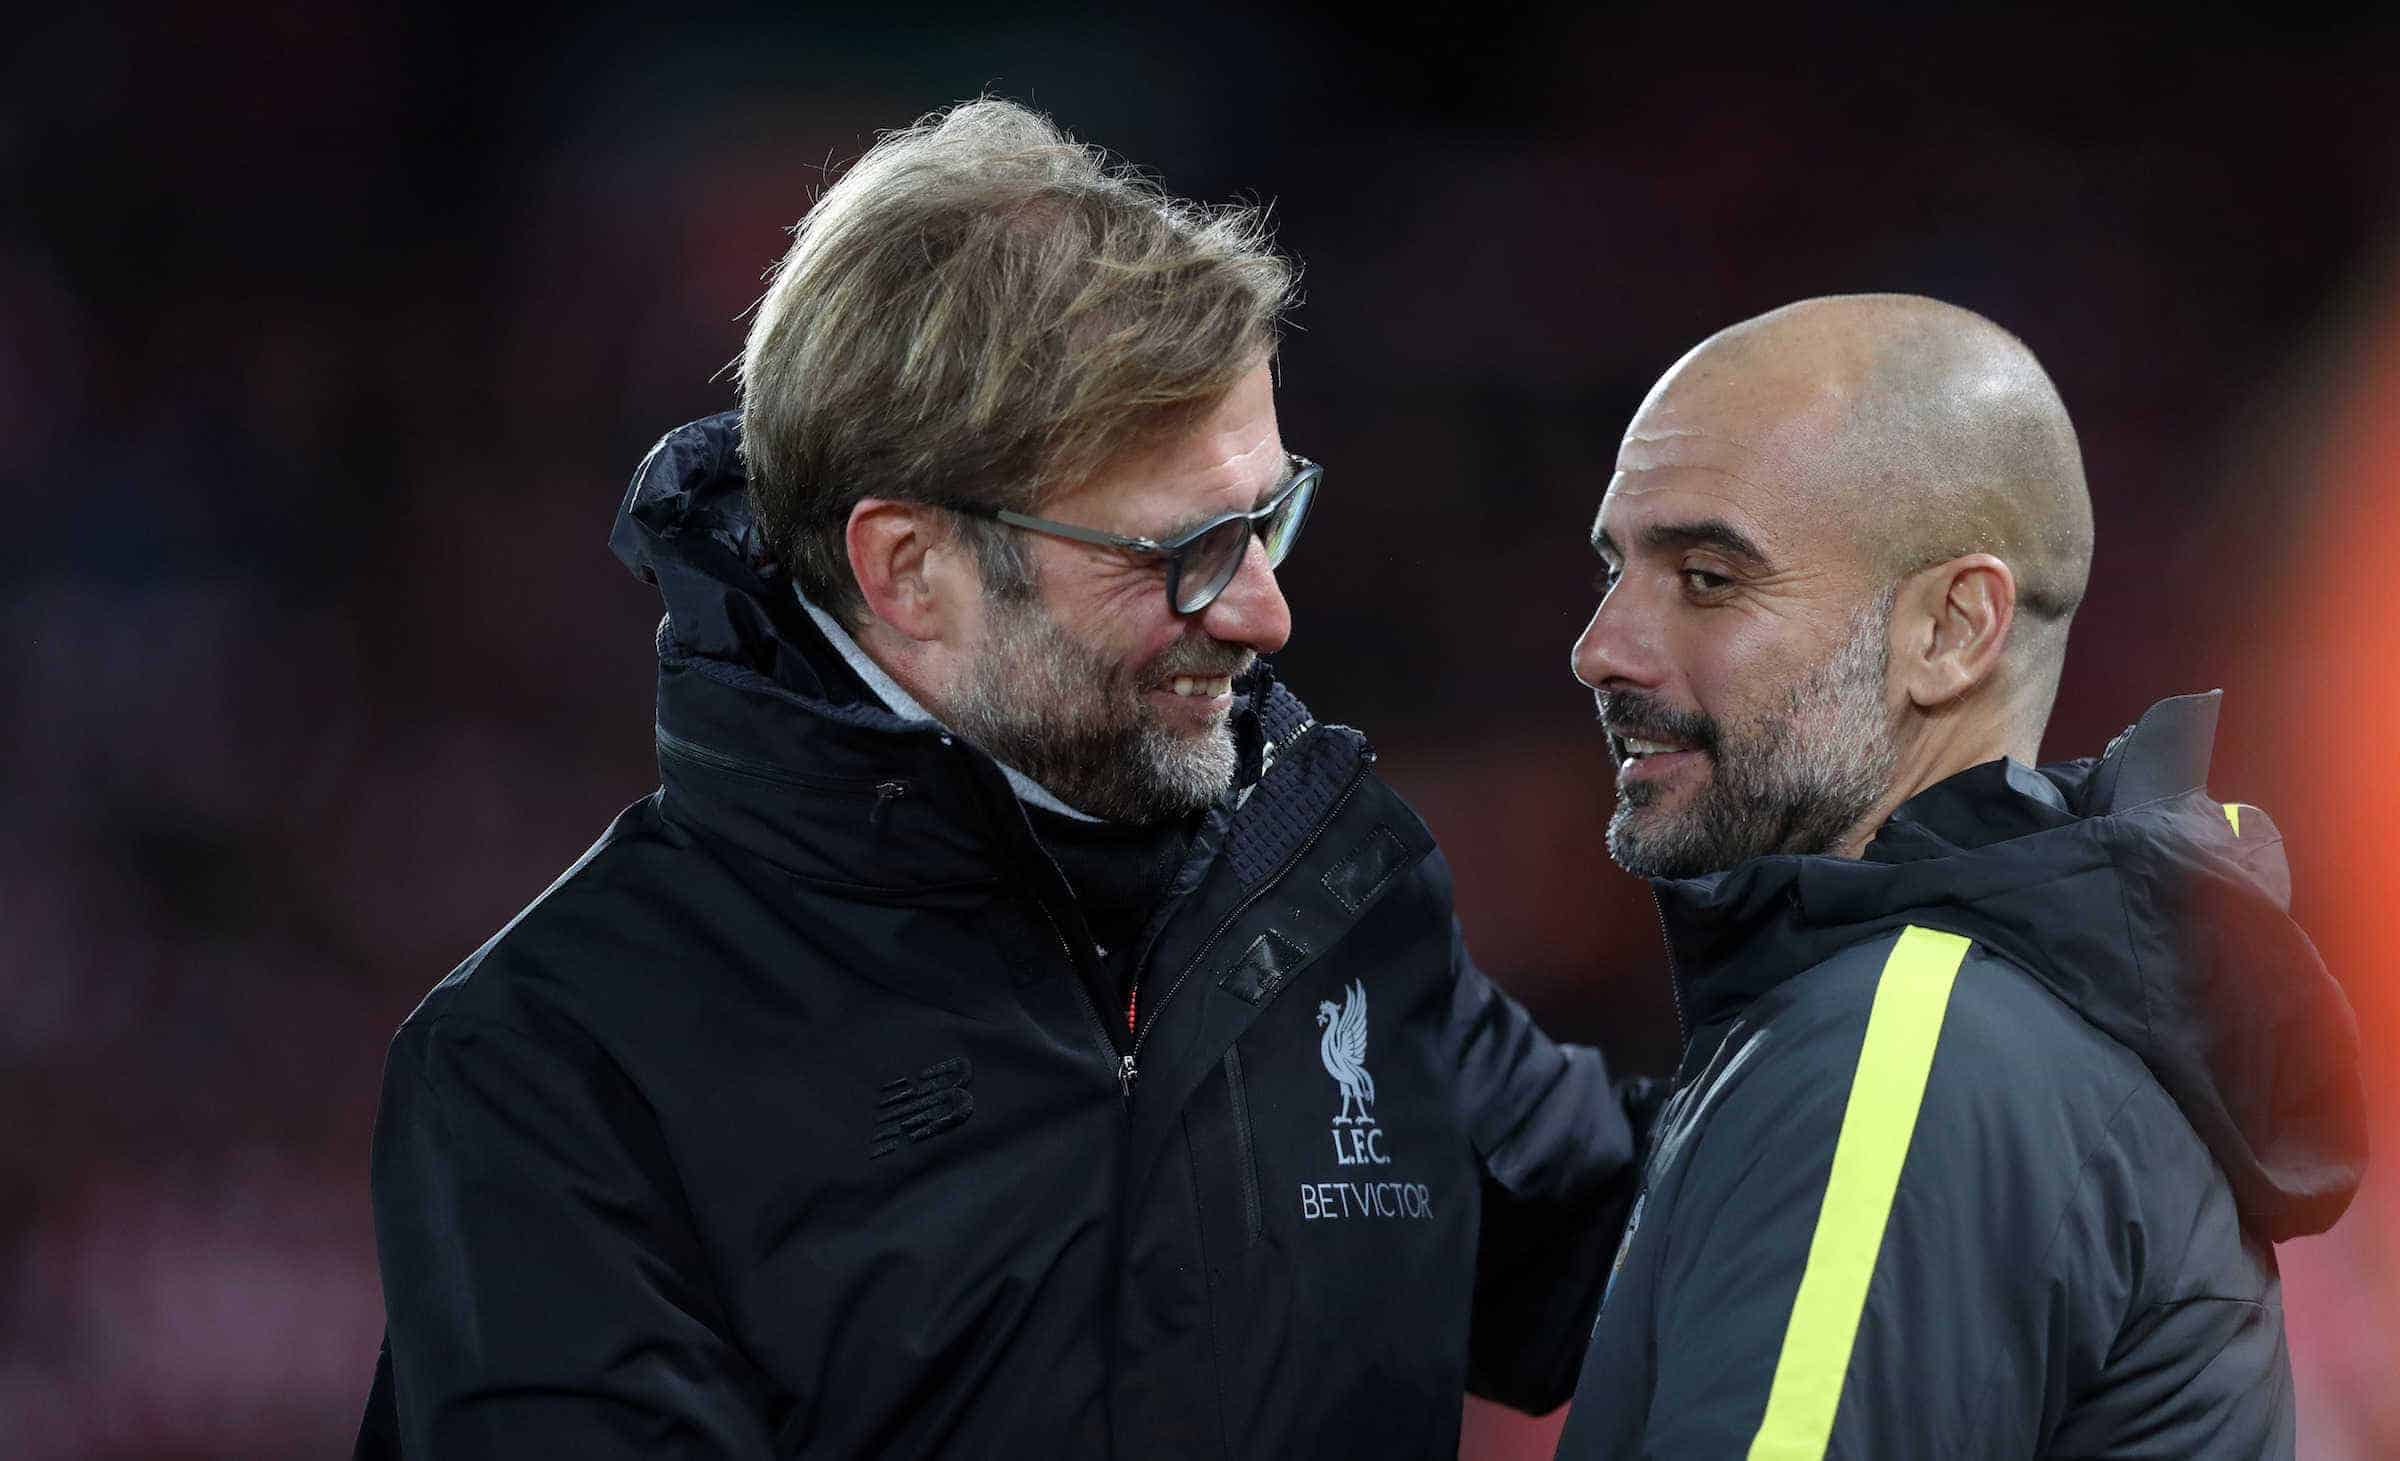 Jurgen Klopp manager of Liverpool and Manchester City Manager Pep Guardiola before the English Premier League match at Anfield Stadium, Liverpool. Picture date: December 31st, 2016. Photo: Cameron/Sportimage via PA Images